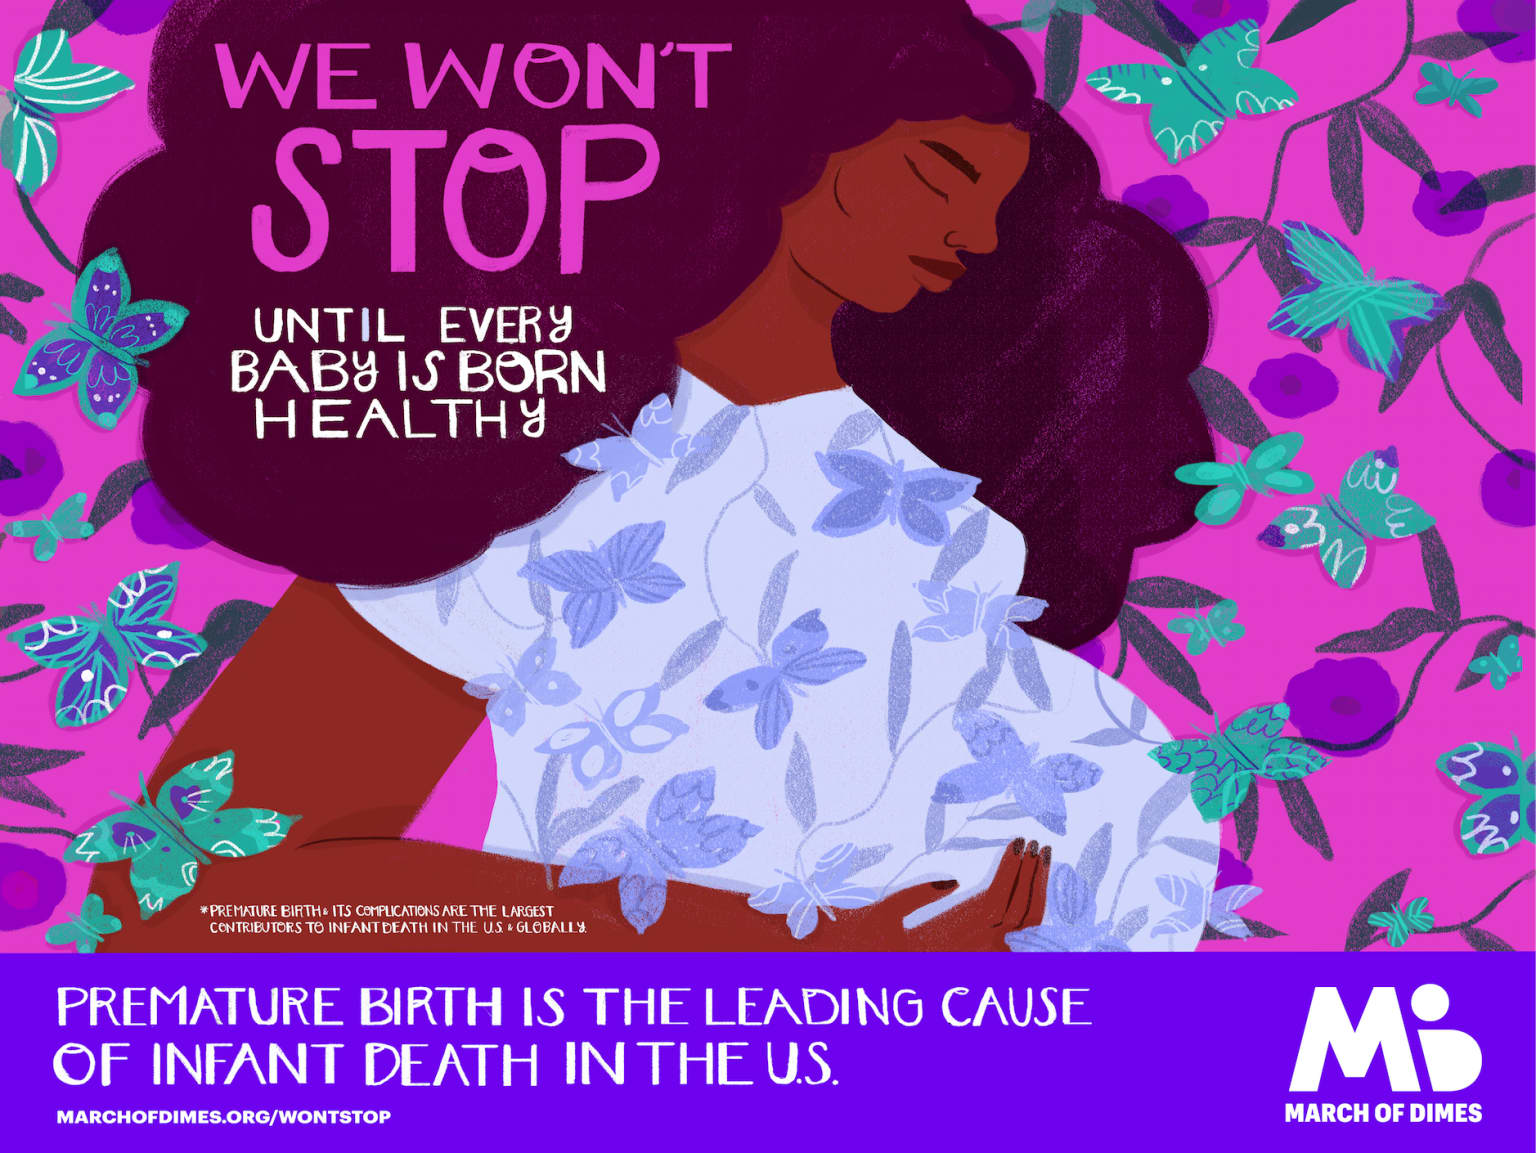 March of Dimes: Won't Stop